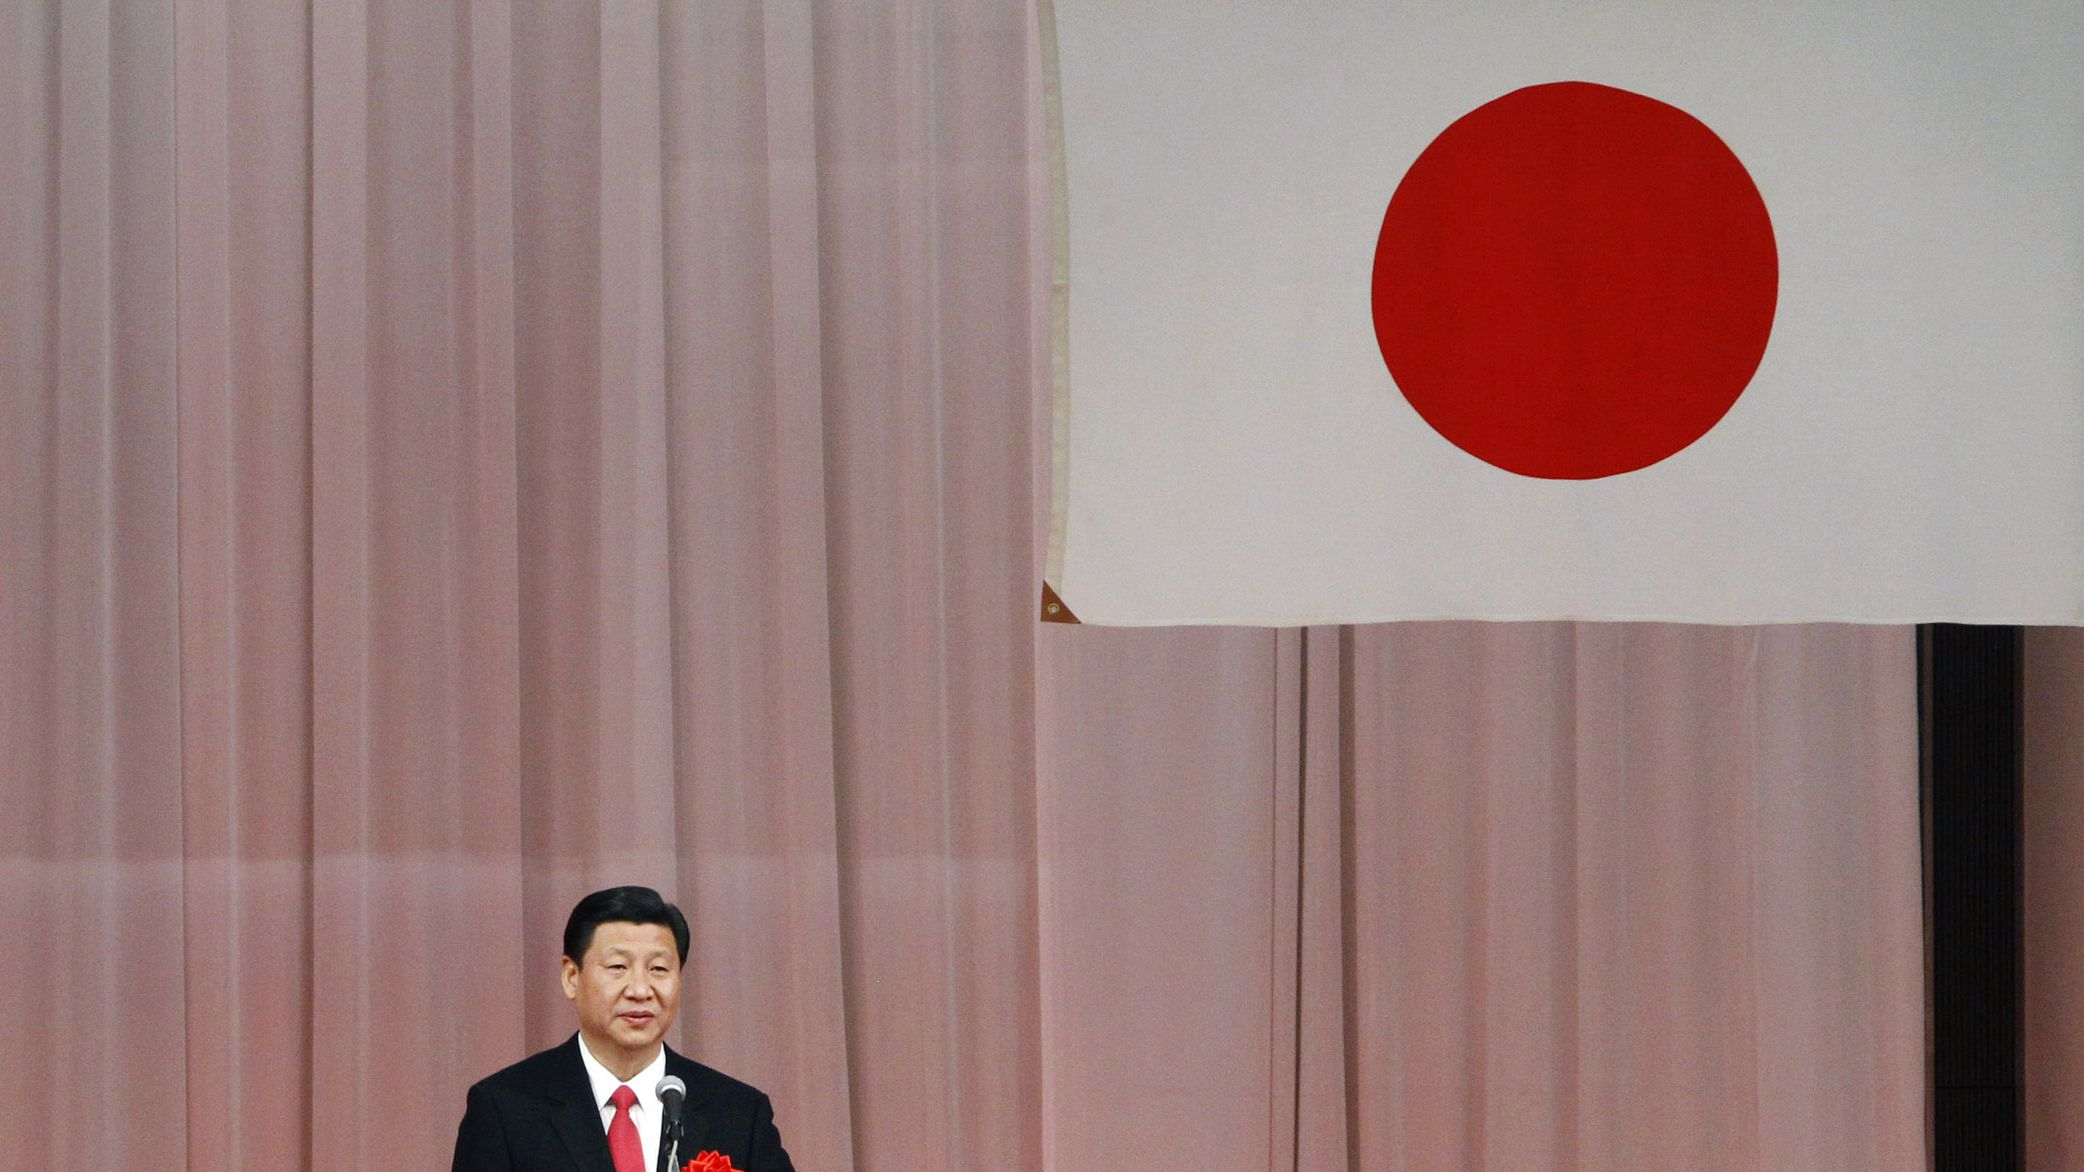 """japan china bad debt toxic asset housing crash stock market economy growth gdp banking bailout financial crisis recapitalization In this Dec. 15, 2009 file photo, Chinese Vice President Xi Jinping delivers a speech during a welcome reception hosted by Japan China friendship groups in Tokyo. China on Tuesday ruled out a meeting between the Chinese and Japanese leaders at next month's Group of 20 summit in Russia, citing a festering territorial dispute and provocations by Tokyo. Japan's failure to """"broaden its mindset, face historical facts and take concrete actions to remove obstacles"""" make a meeting between President Xi Jinping and Prime Minister Shinzo Abe impossible, Vice Foreign Minister Li Baodong was quoted as saying by the official Xinhua News Agency. (AP Photo/Koji Sasahara"""